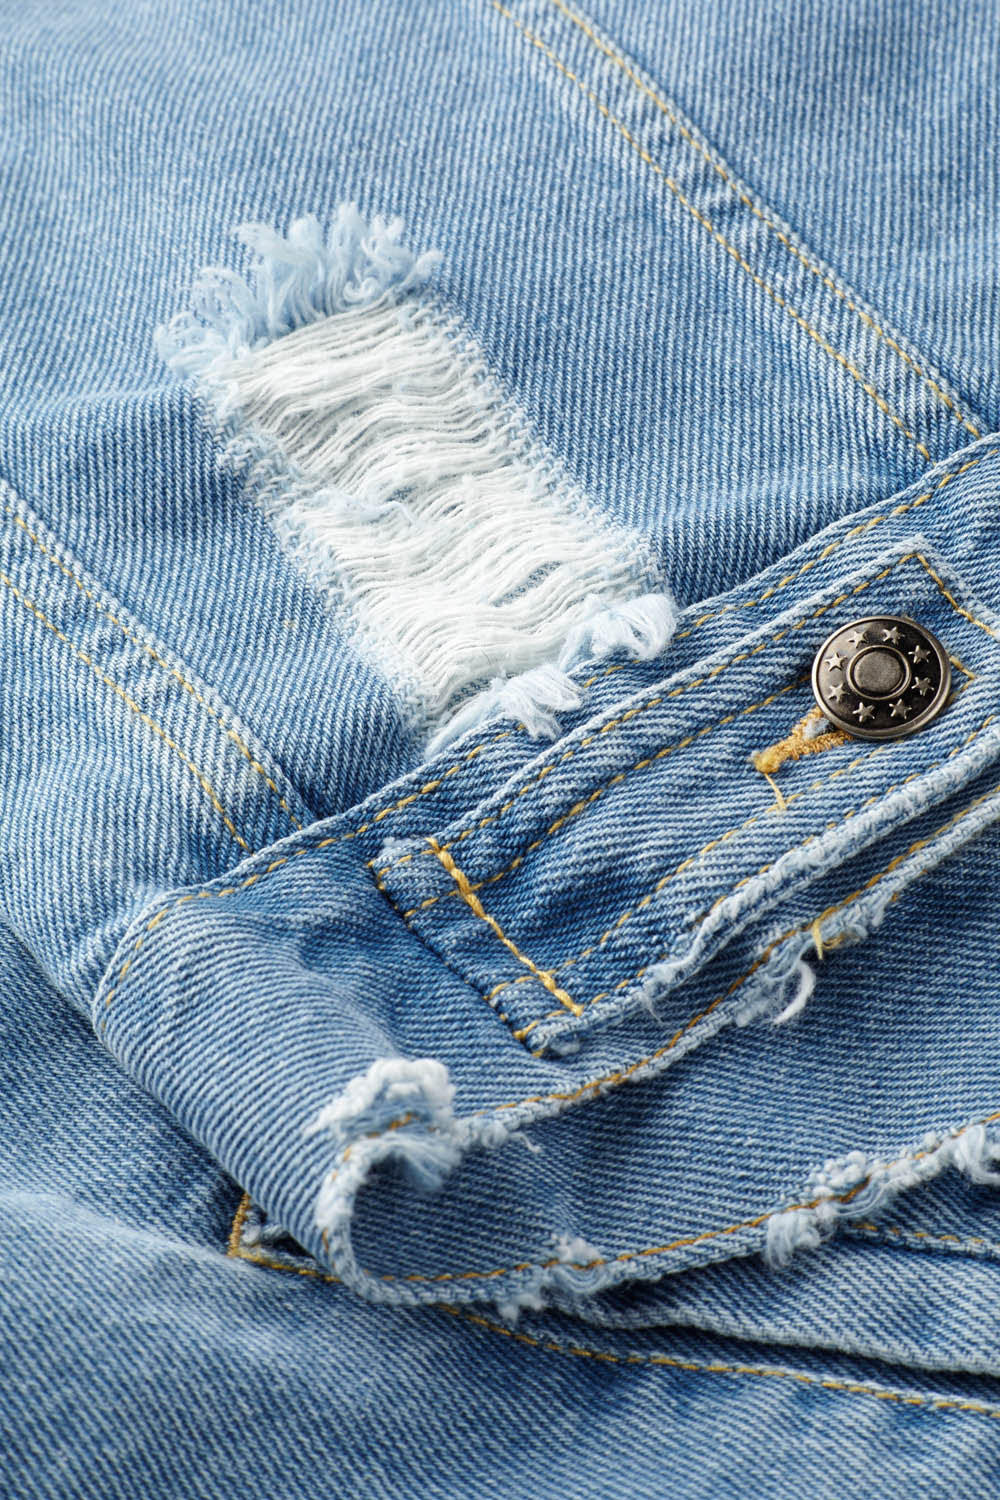 Distressed Denim Jacket - Light